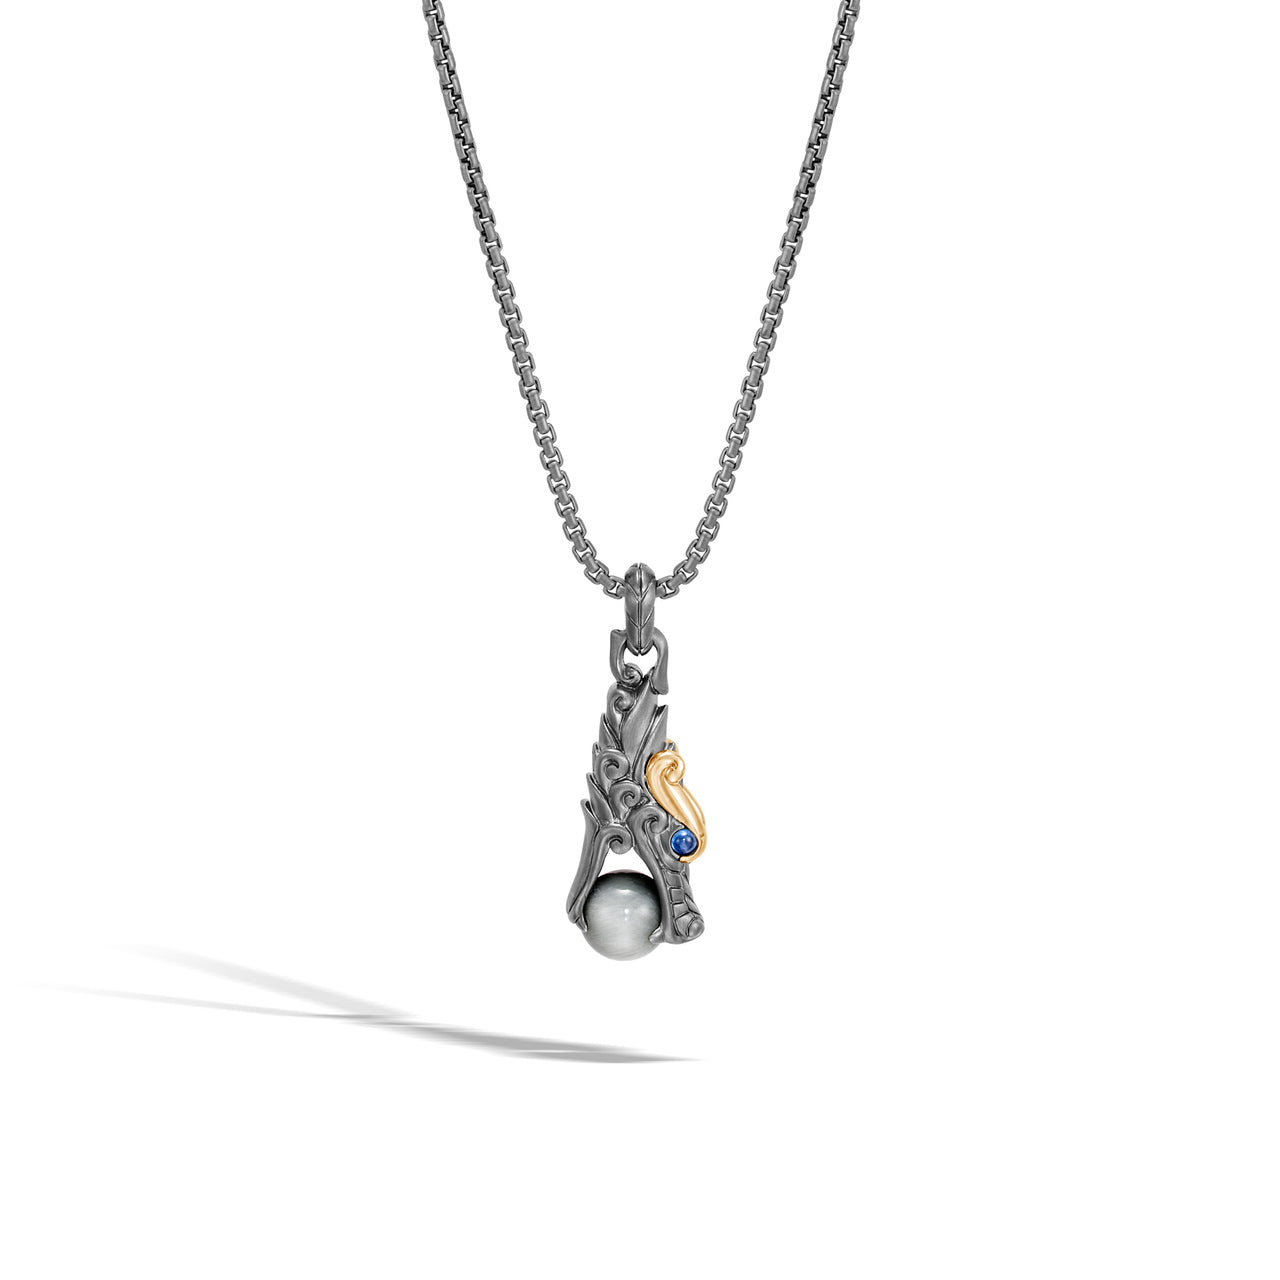 John Hardy Men's Legends Naga Black Rhodium Plated Sterling Silver Pendant with Eagle Eye Bead